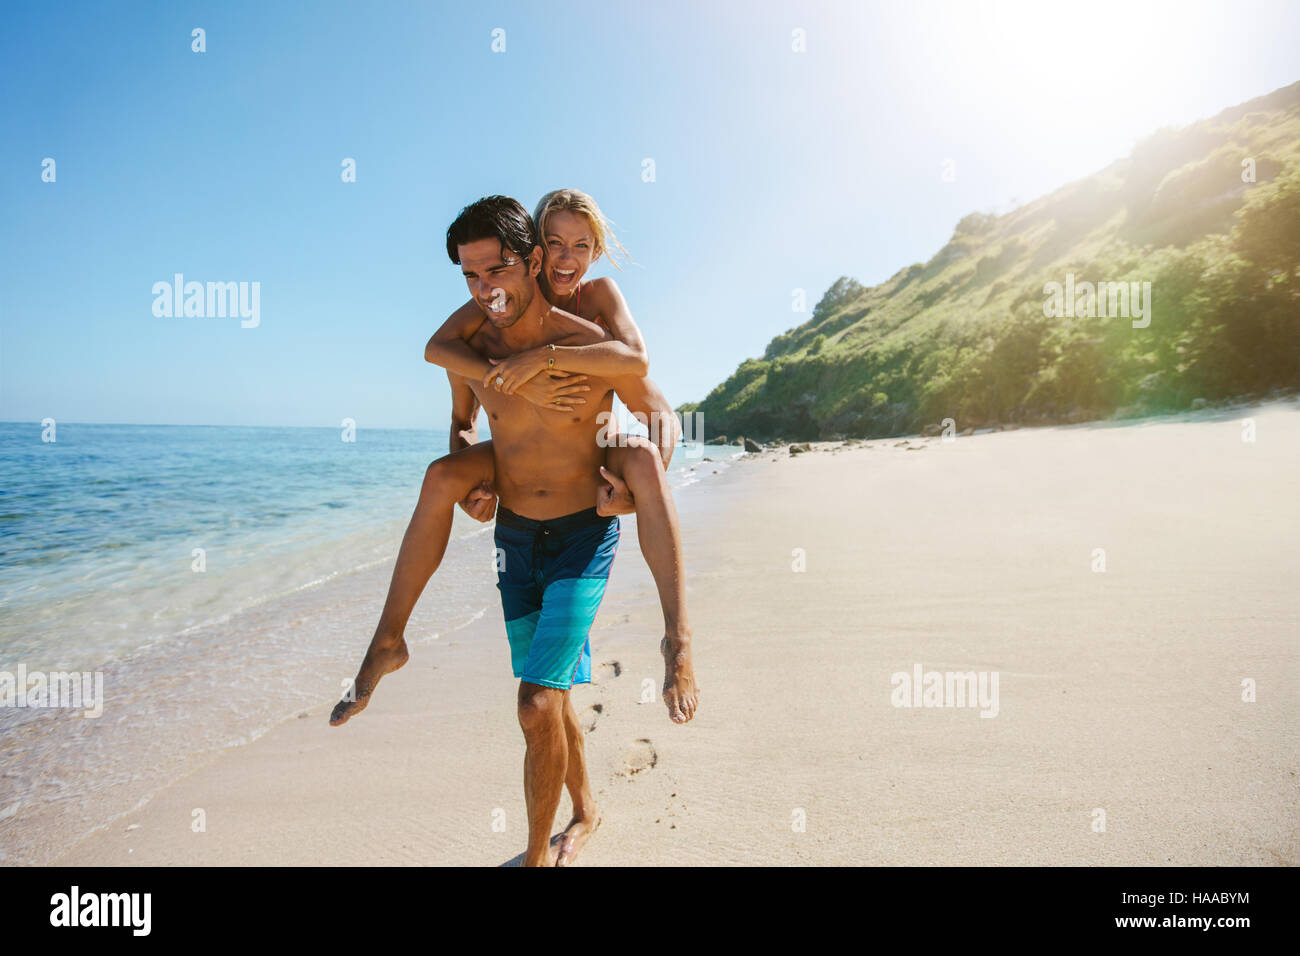 Portrait of man carrying girlfriend on his back along the sea shore. Man giving piggyback ride to girlfriend on - Stock Image